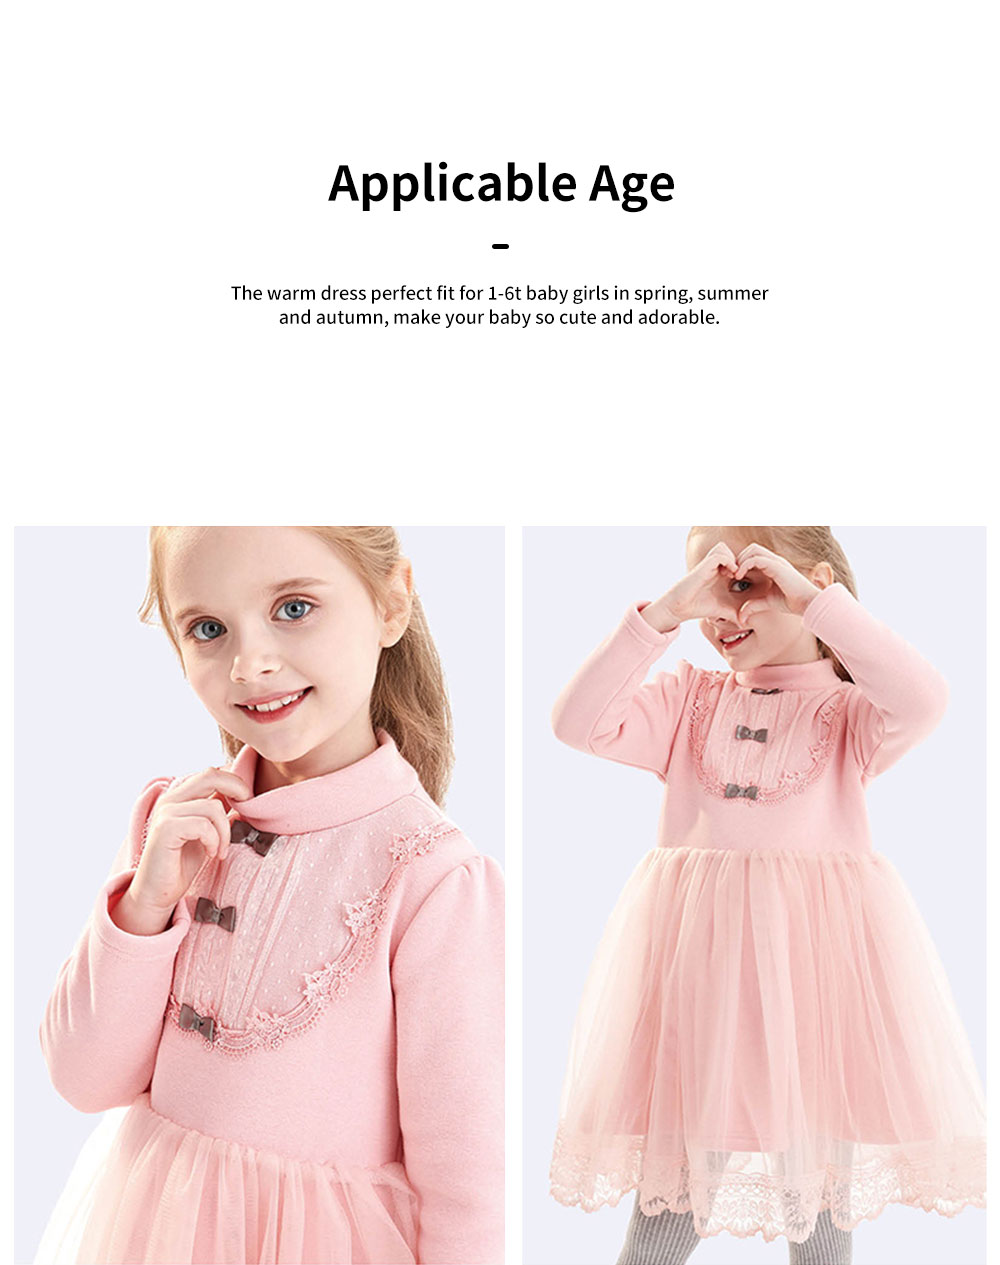 Warm Girl's One-piece Dress for Winter Autumn Fashion Grenadine Lace Princess Skirt with Buttons Pretty Long Sleeve Girls Dress 6